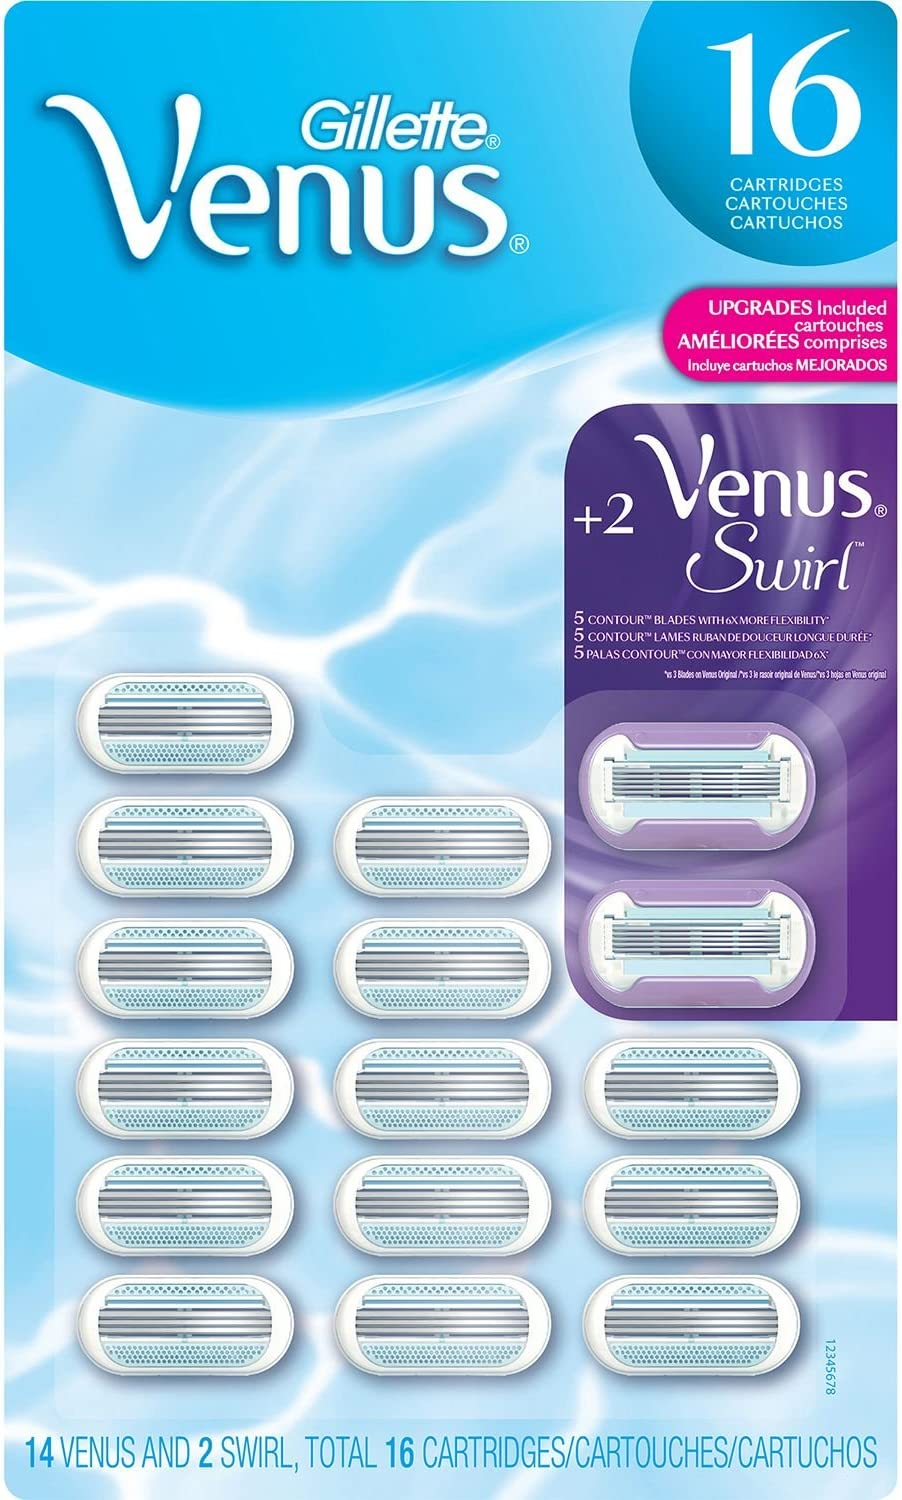 Venus Cartridges - 14 ct. + 2 Venus Swirl Cartridges ES